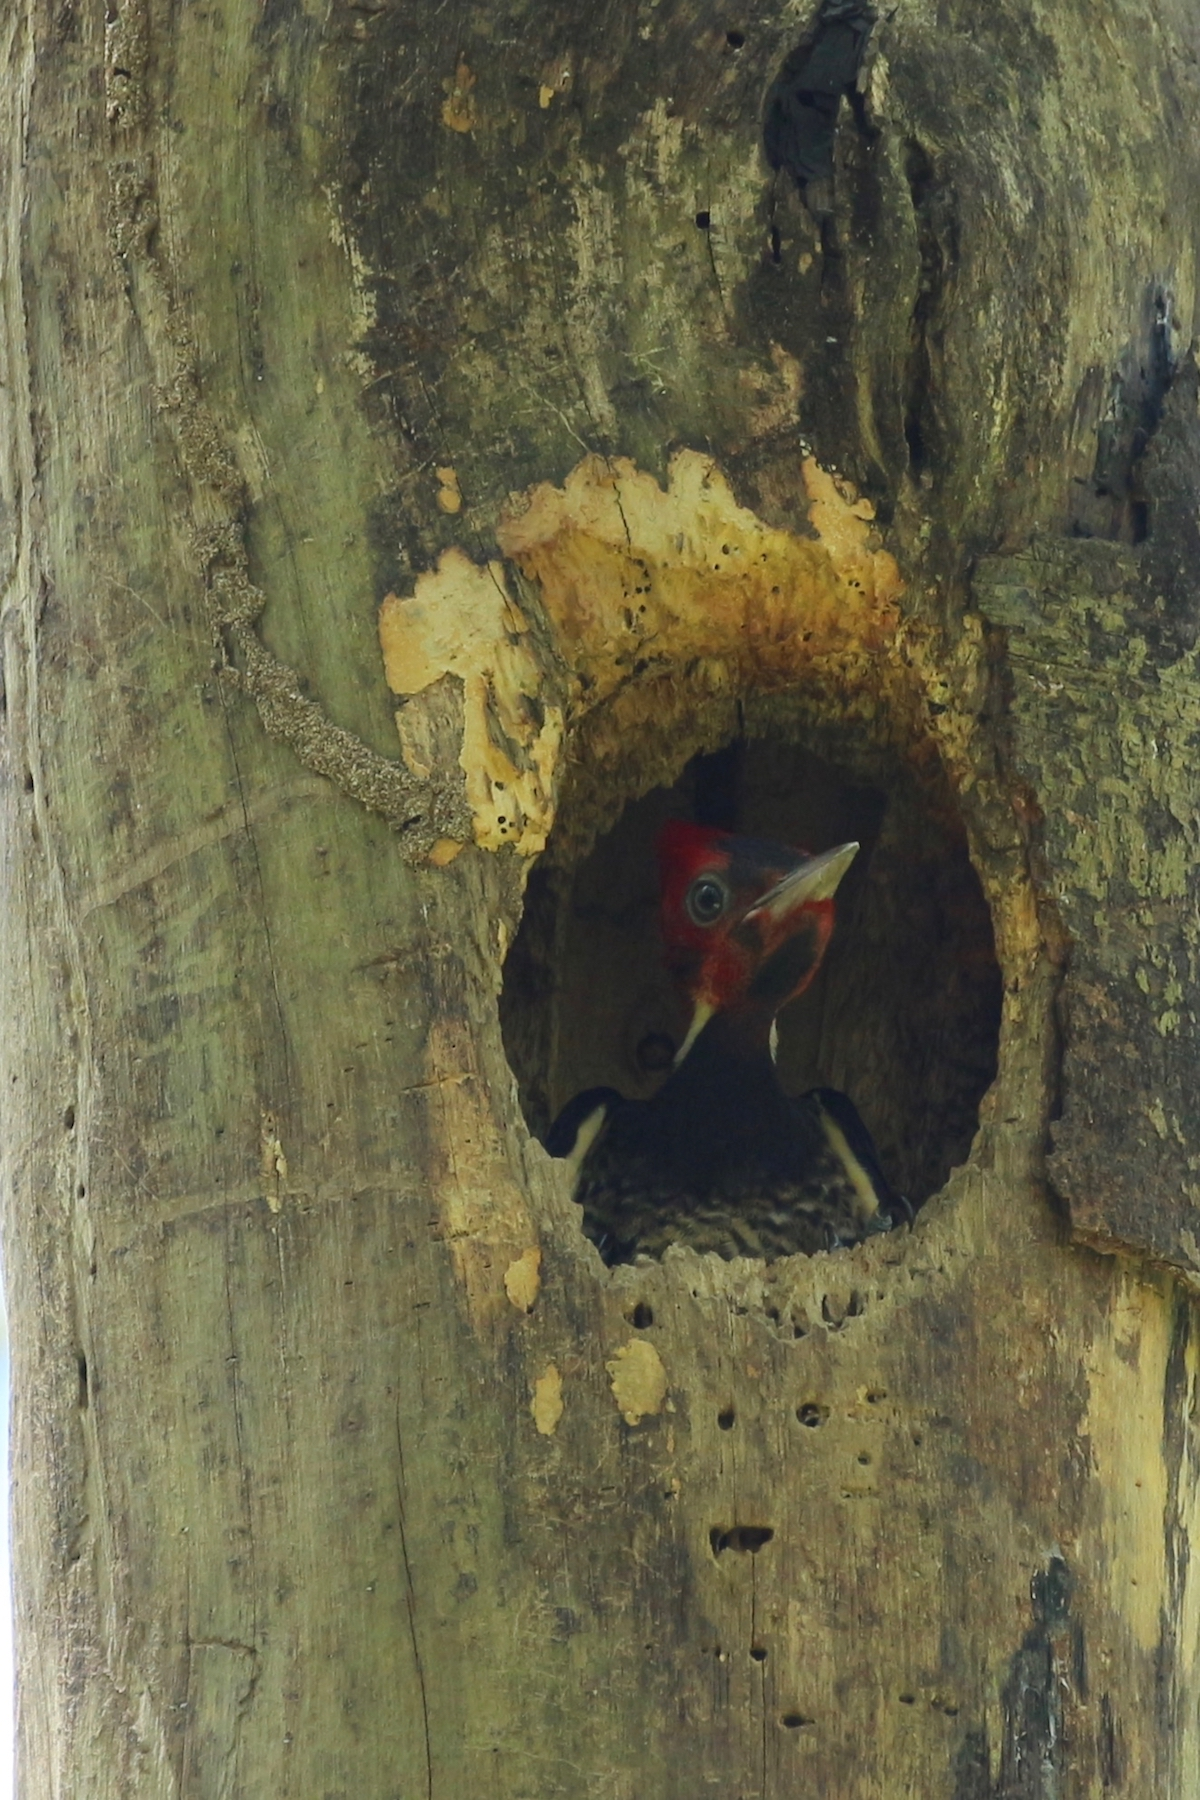 Pale-billed Woodpecker – imm